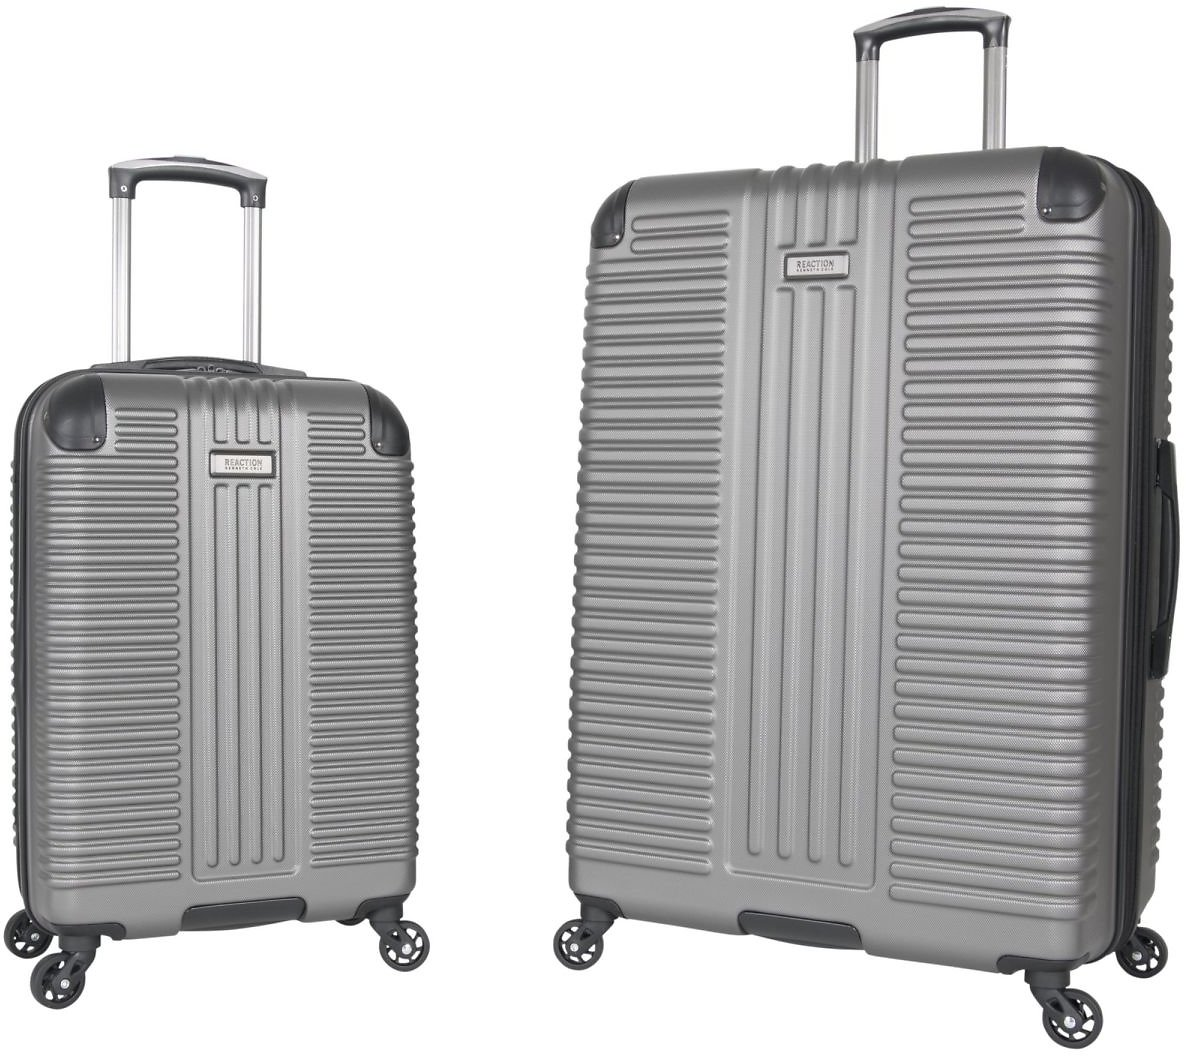 25% OFF Kenneth Cole Reaction 2-Pc. Hardside Luggage Set - Silver